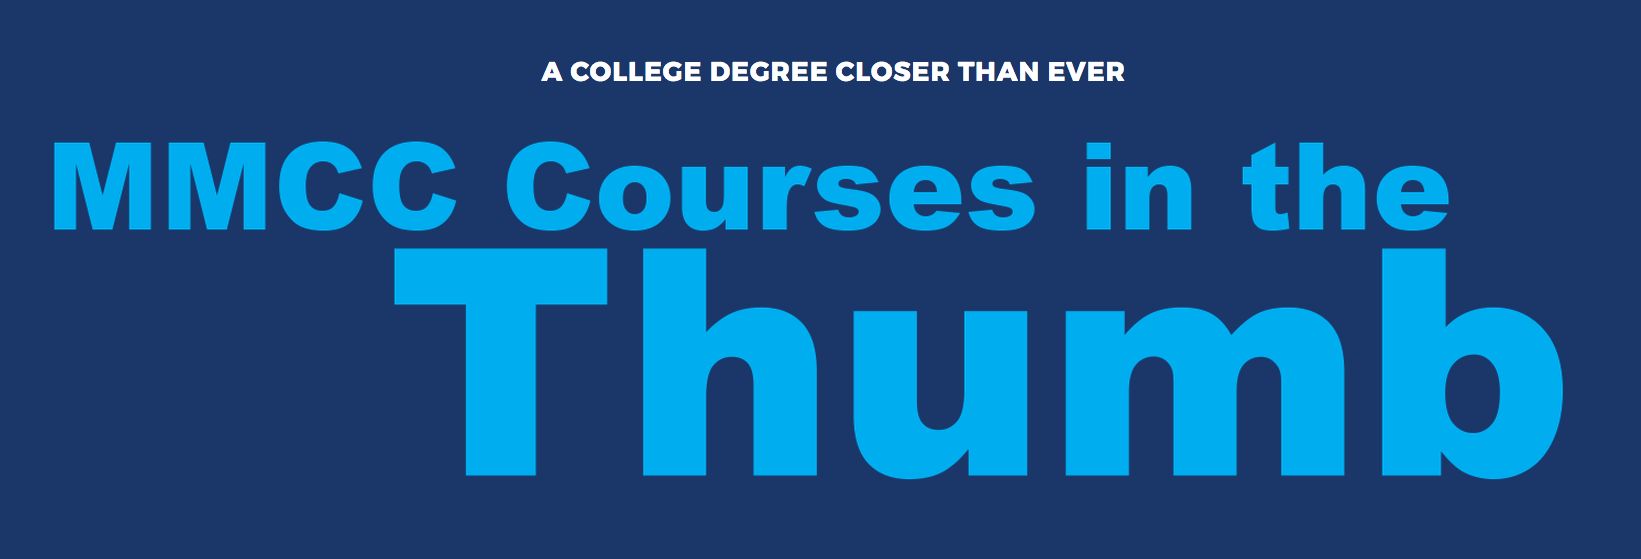 A college degree closer than ever: MMCC Courses in the Thumb